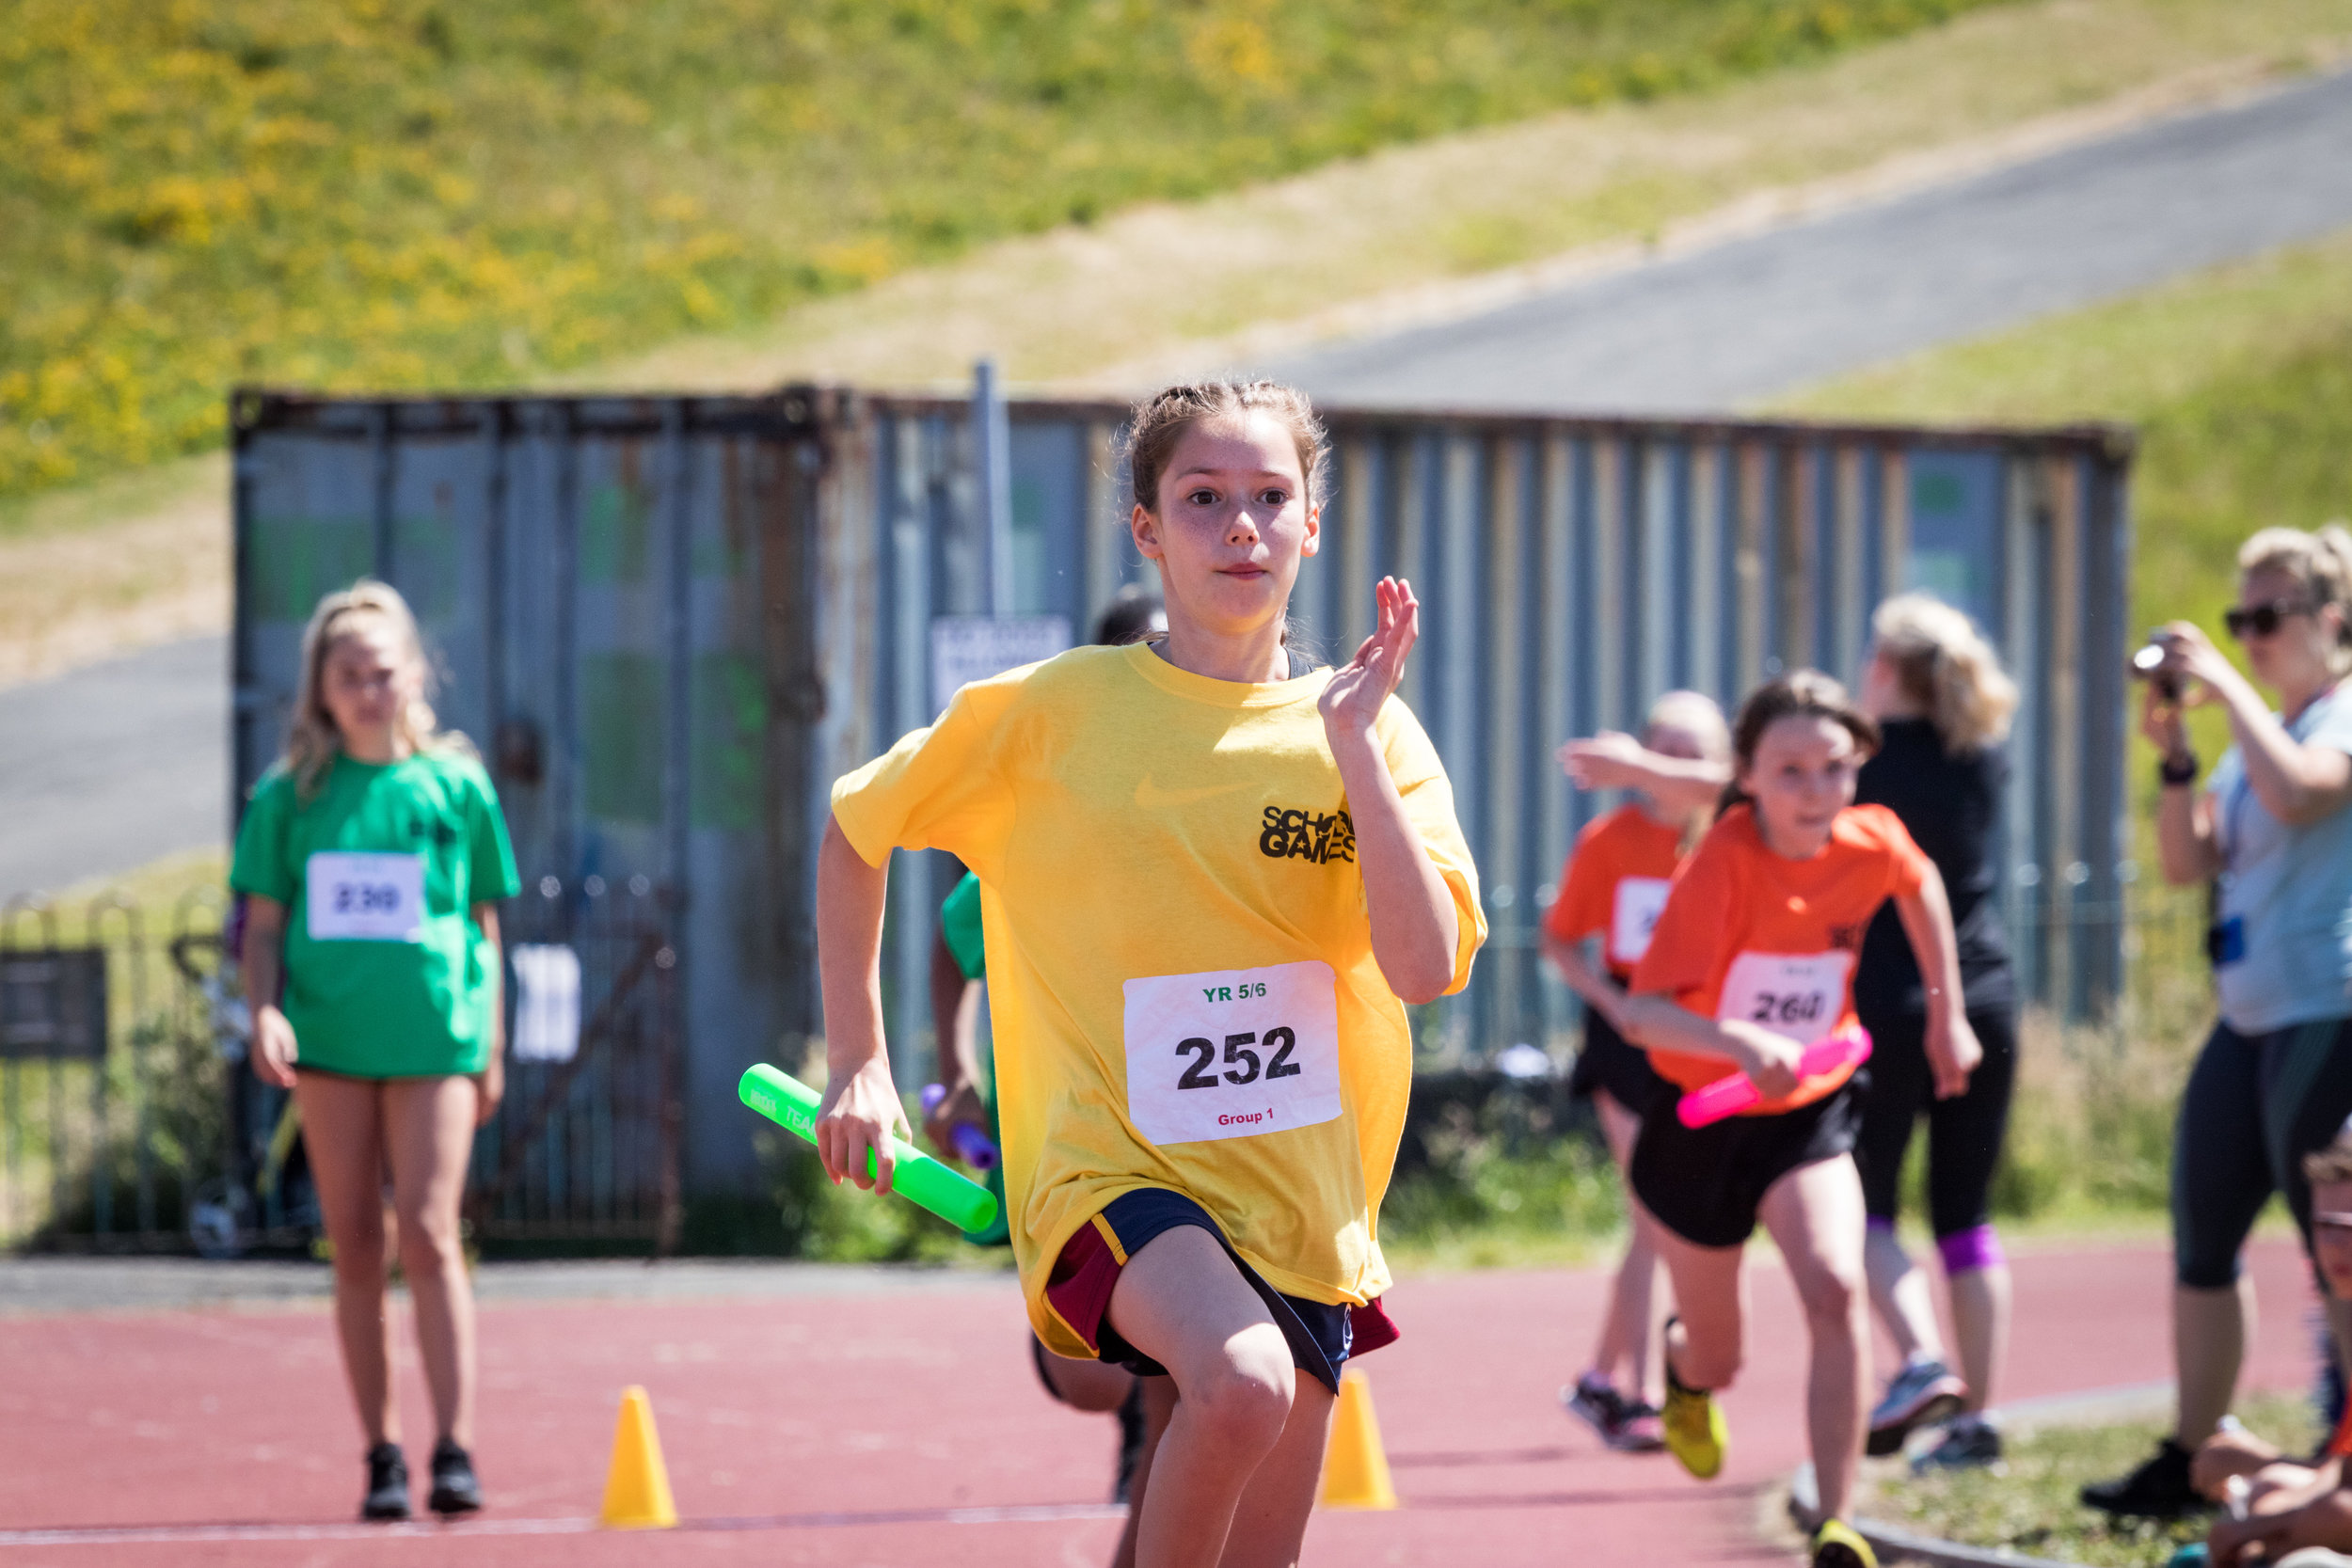 7622-456-TWS School Games June 2018.jpg